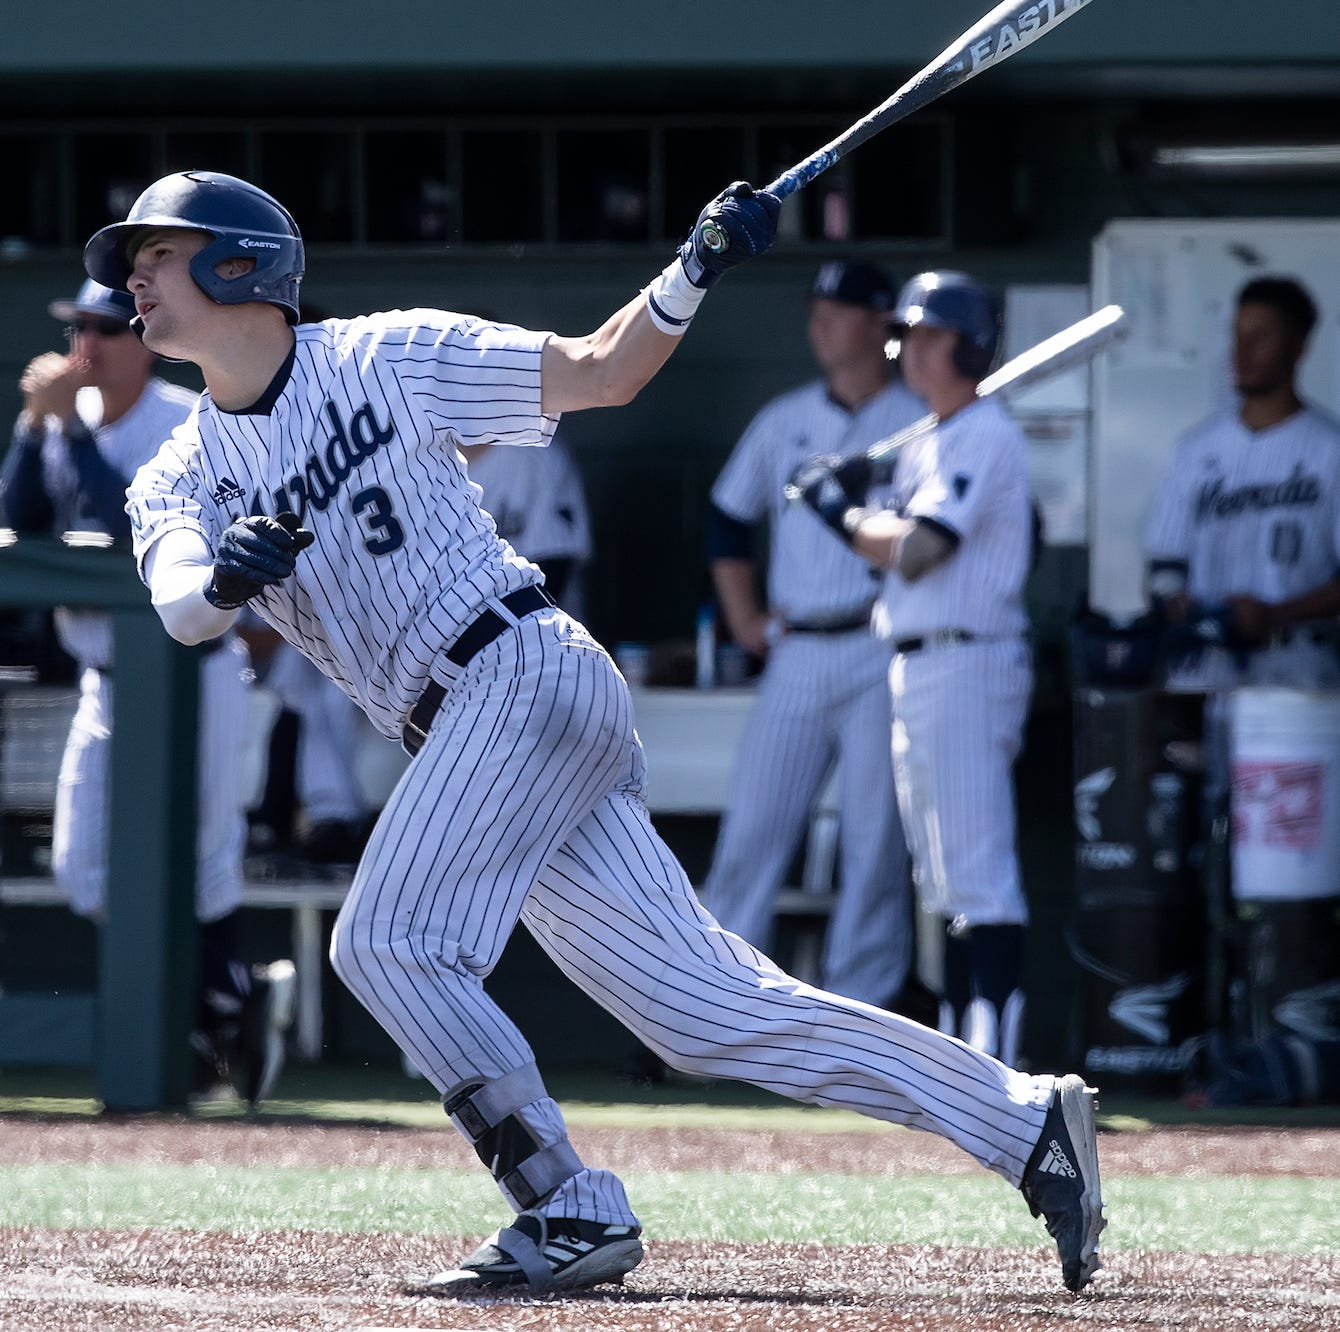 Mountain West baseball tournament in Reno: What to watch for